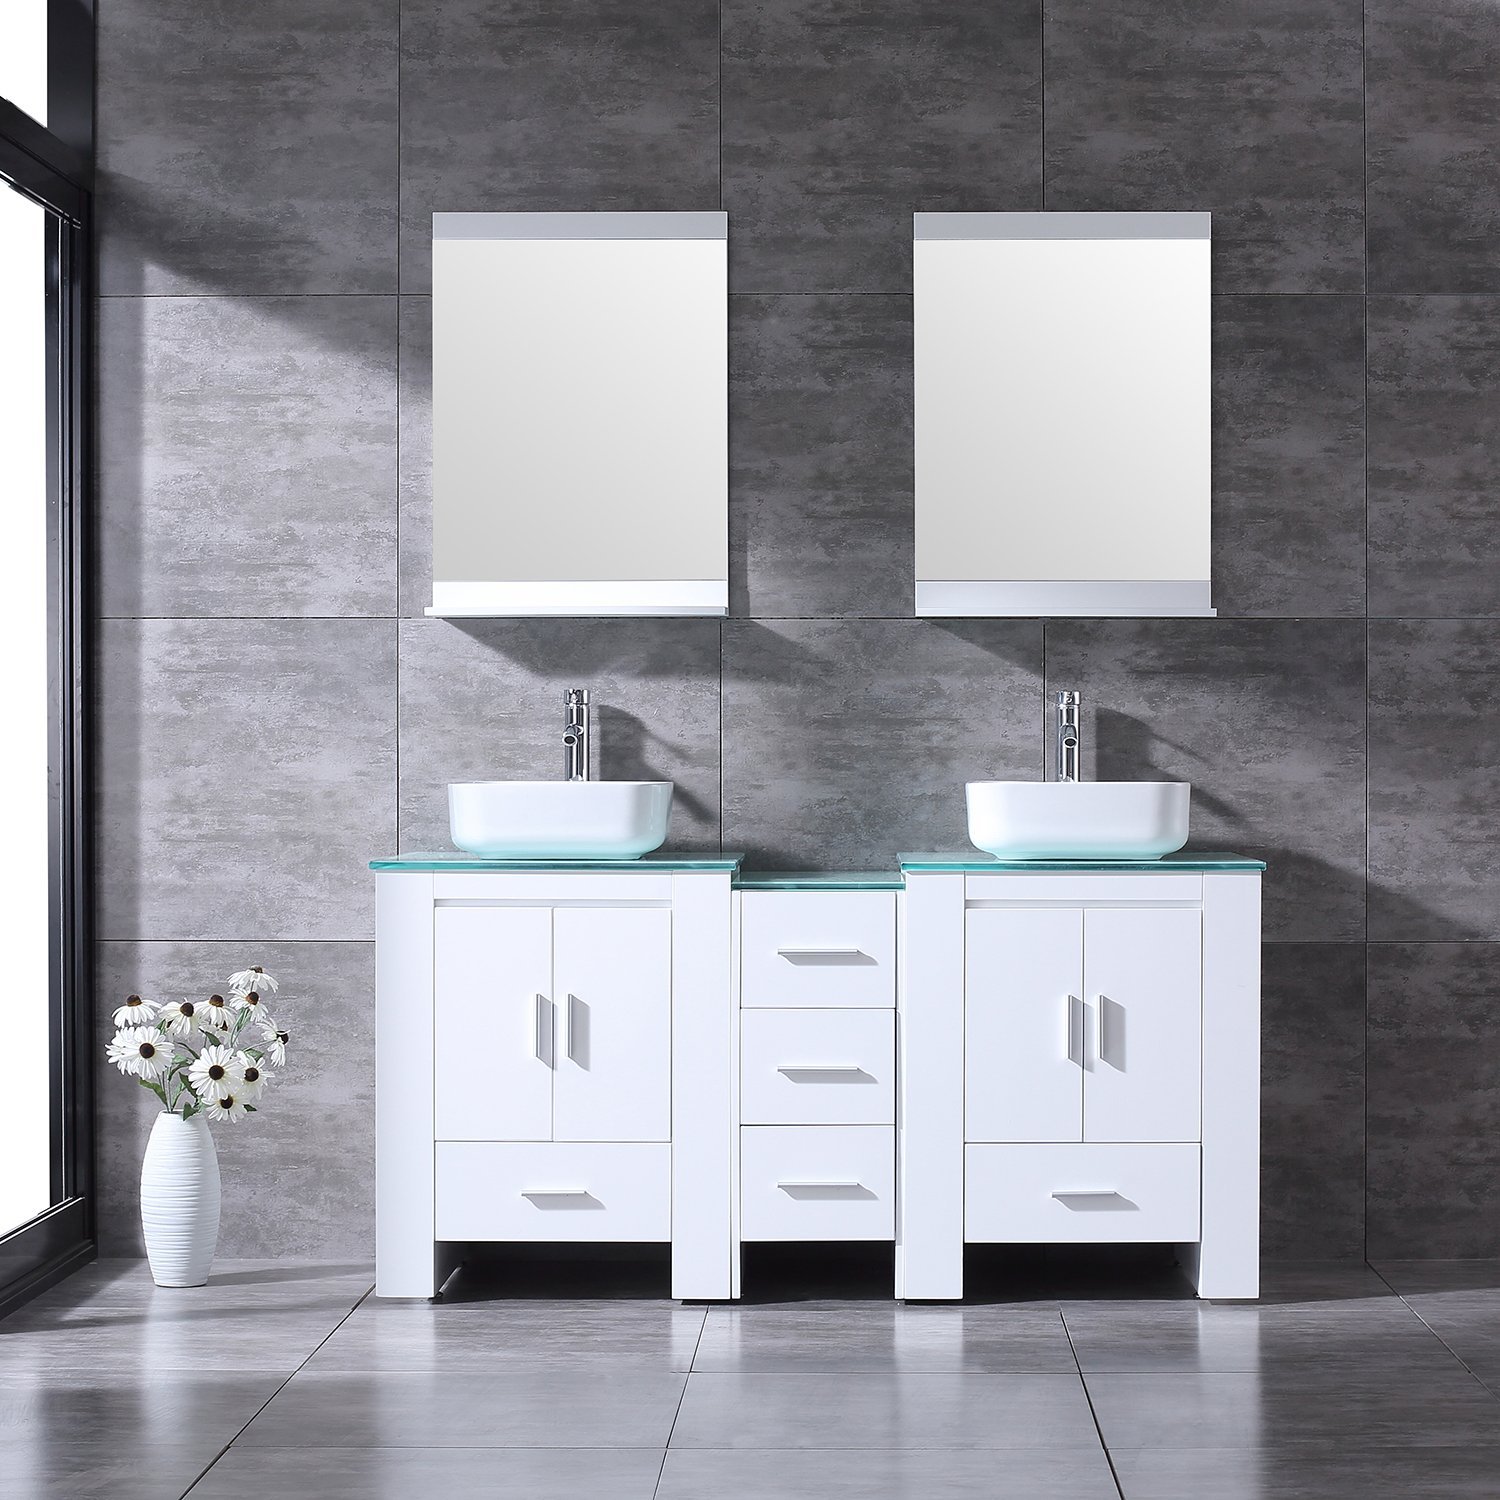 """BATHJOY Luxury 60"""" White Bathroom Double Wood Vanity Cabinet with Square Ceramic Vessel Sink and Mirrors Faucet Drain Combo"""